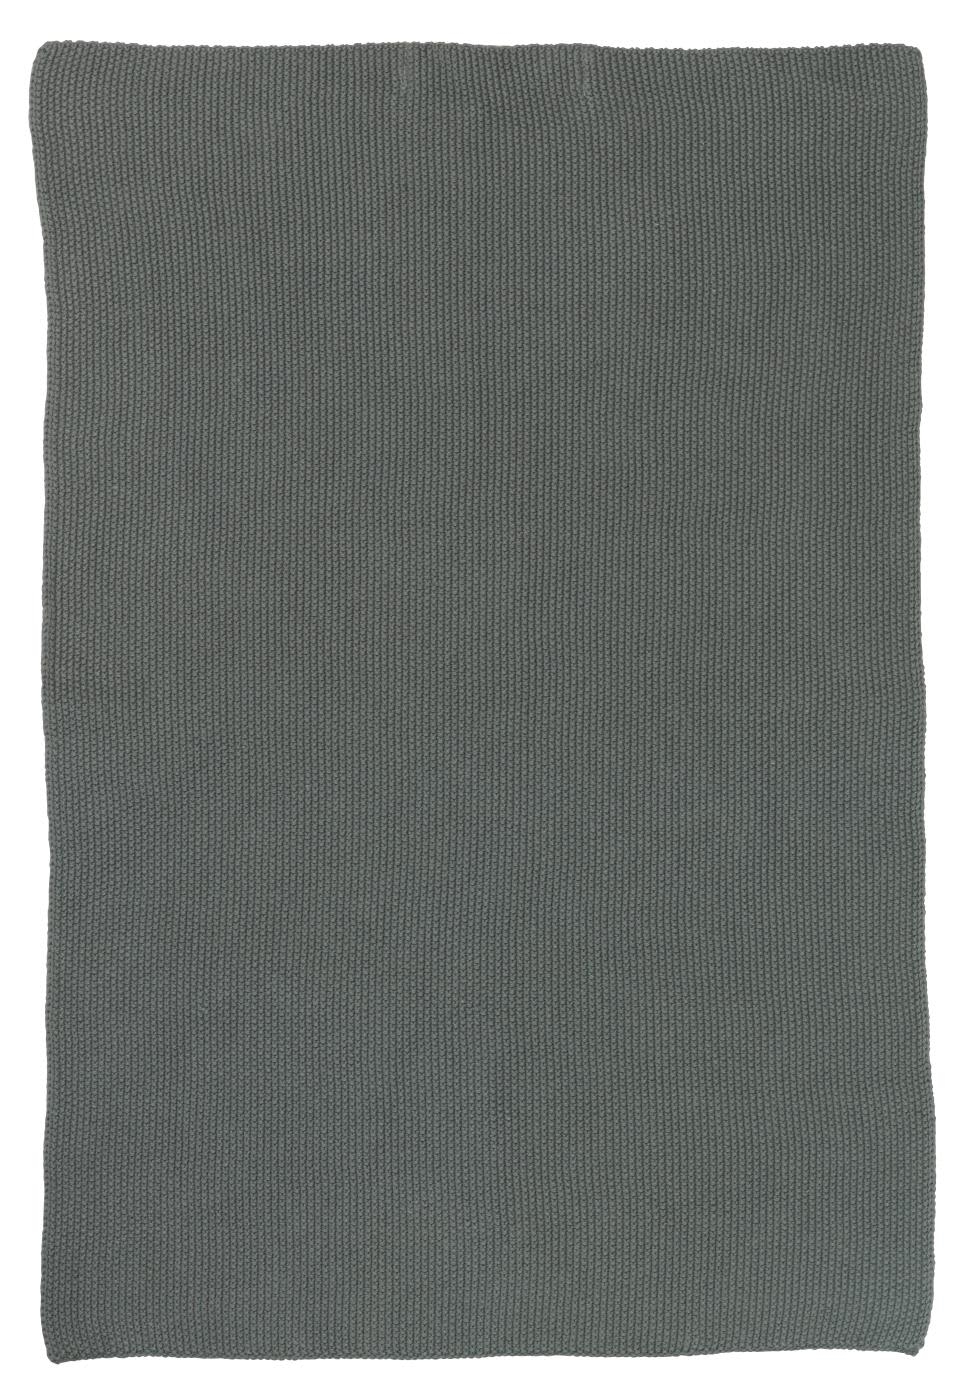 Ib Laursen Moss Green Knitted Cotton Towel